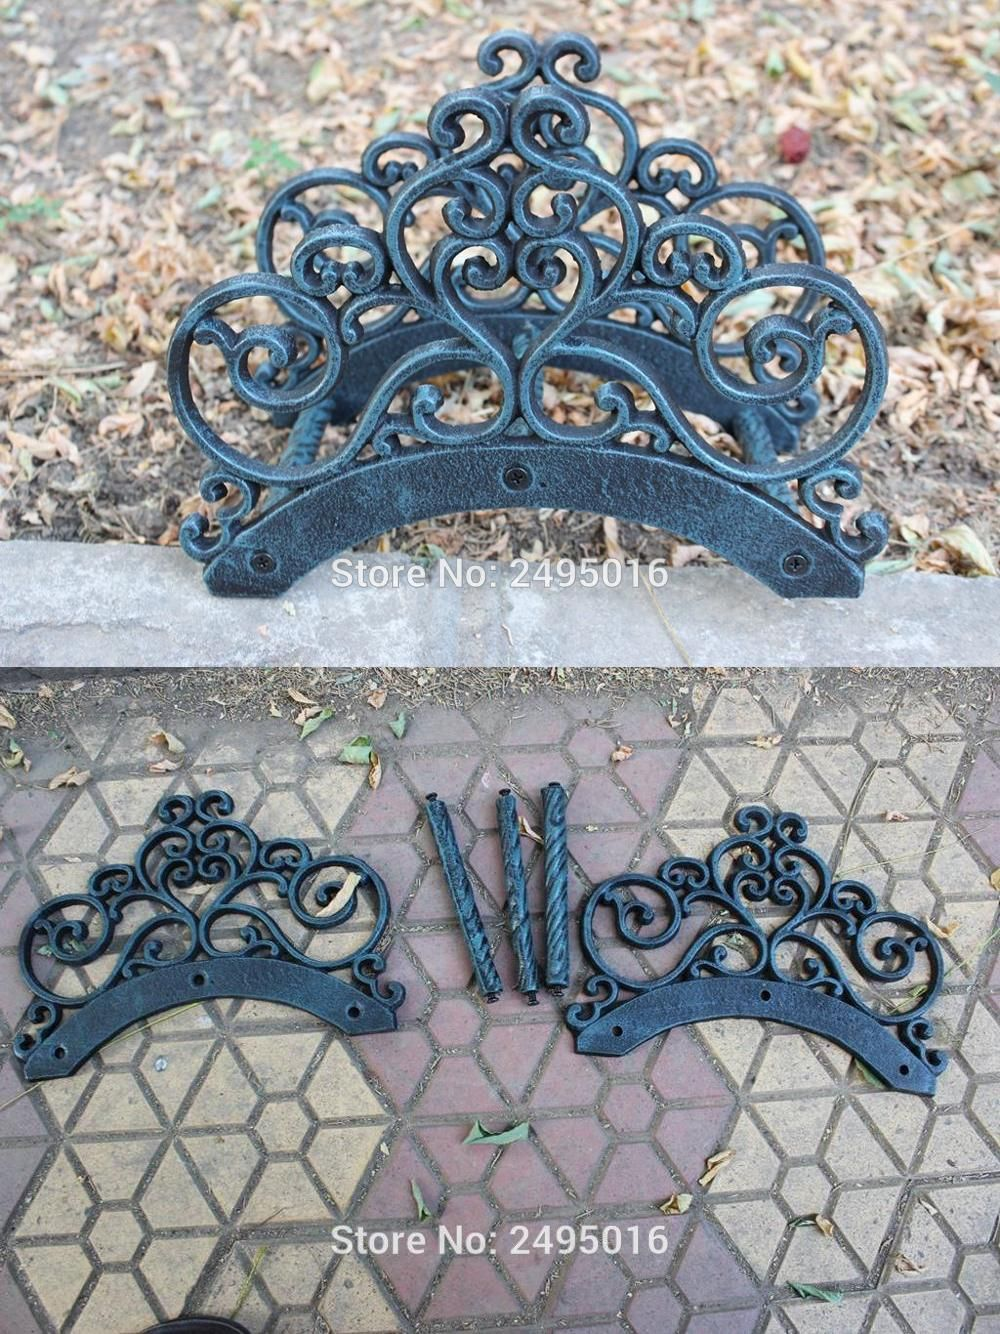 Visit to buy wrought iron new garden hose rack holder scrowl visit to buy wrought iron new garden hose rack holder scrowl outdoor decorative hose reel hanger cast iron antique rust wall mount free ship amipublicfo Image collections